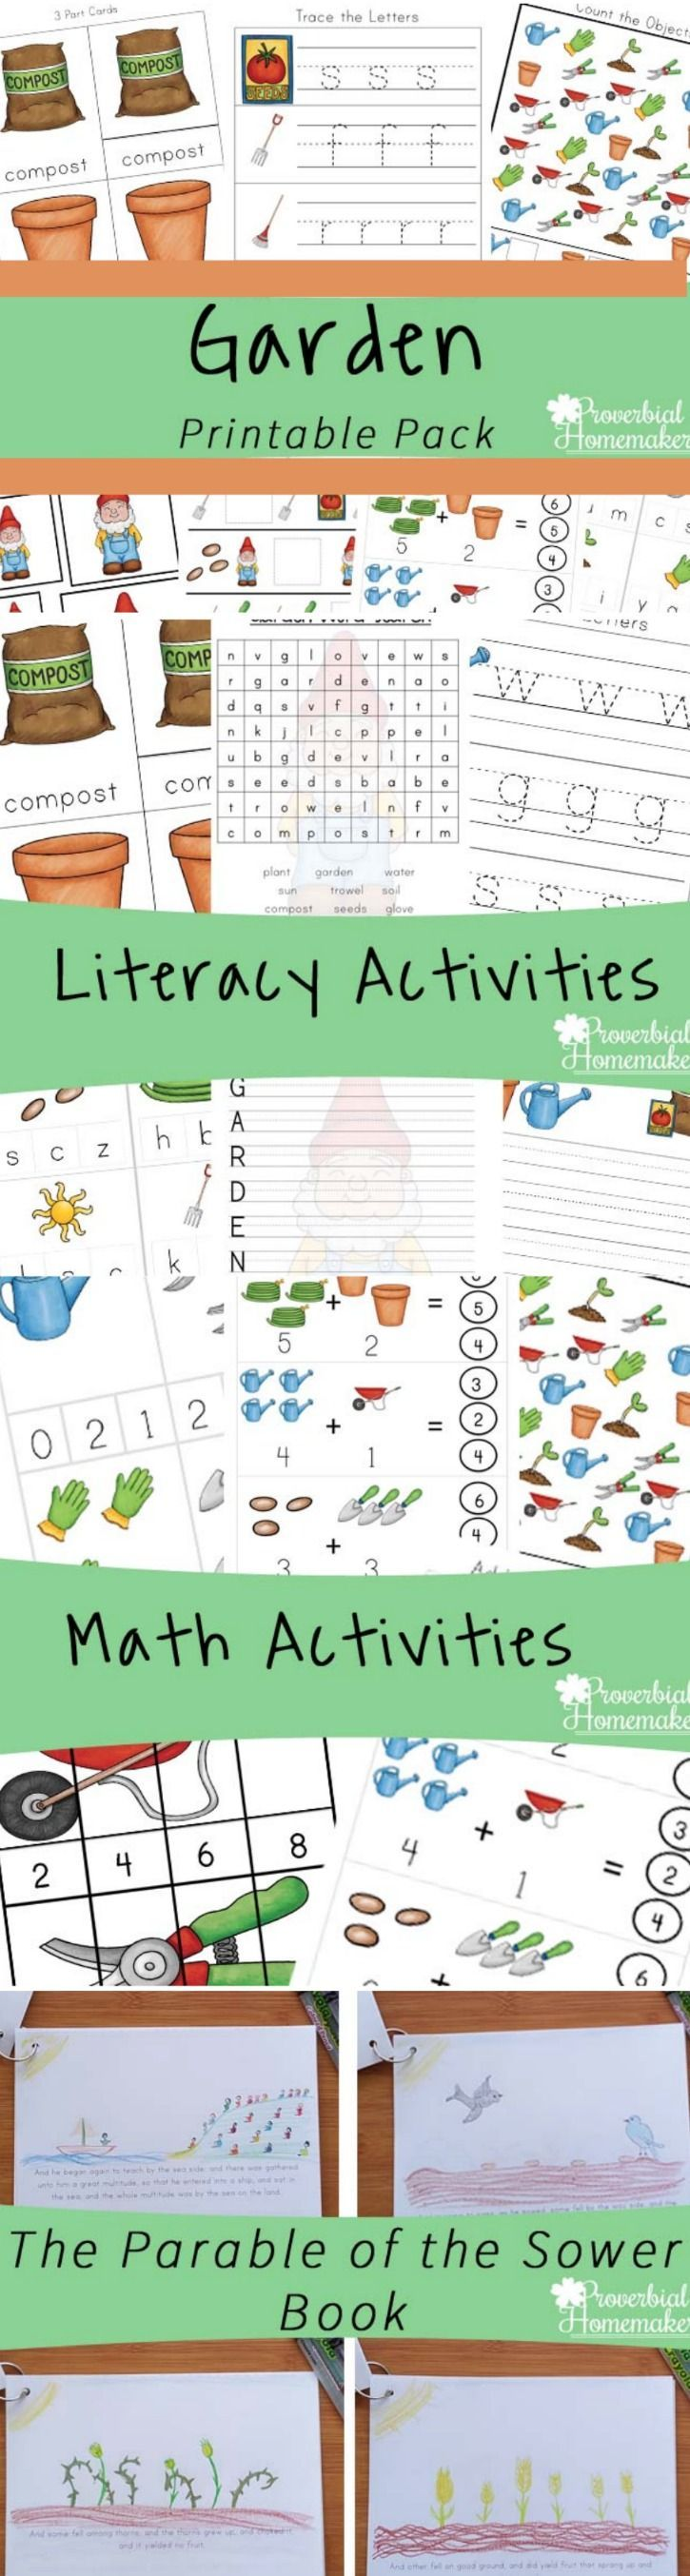 Fun learning activities while gardening with your kids! Download this garden printable pack for ages 2-9! via @TaunaM